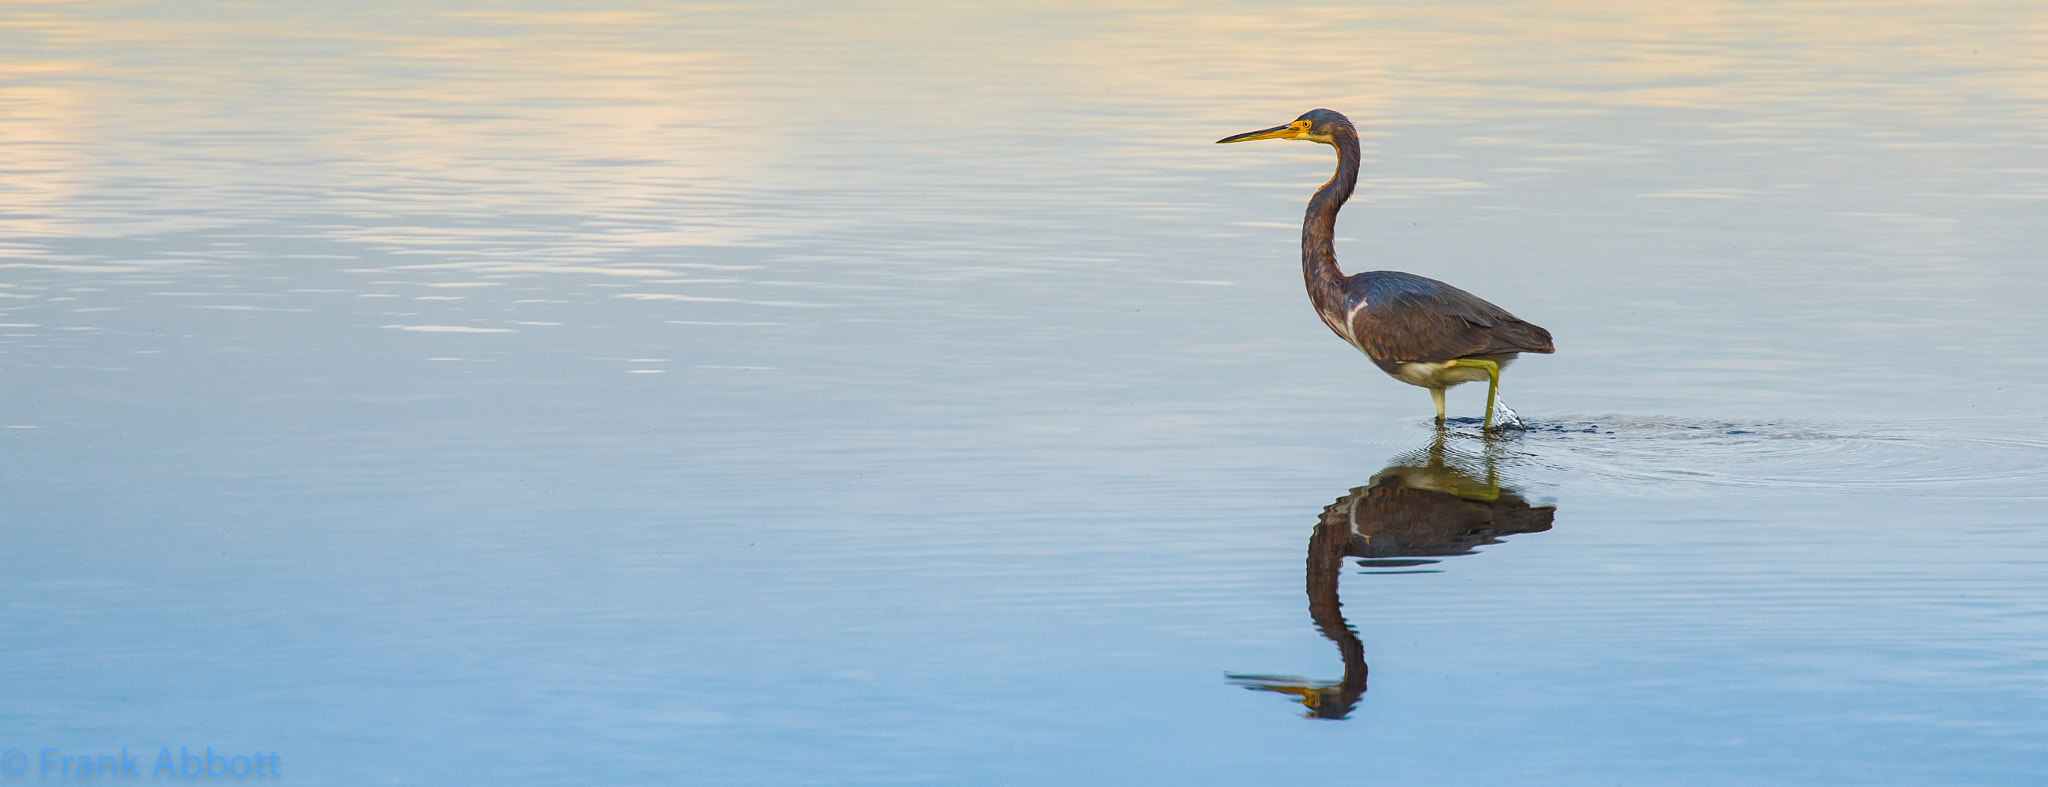 Photograph Tricolored Heron by Franklin Abbott on 500px